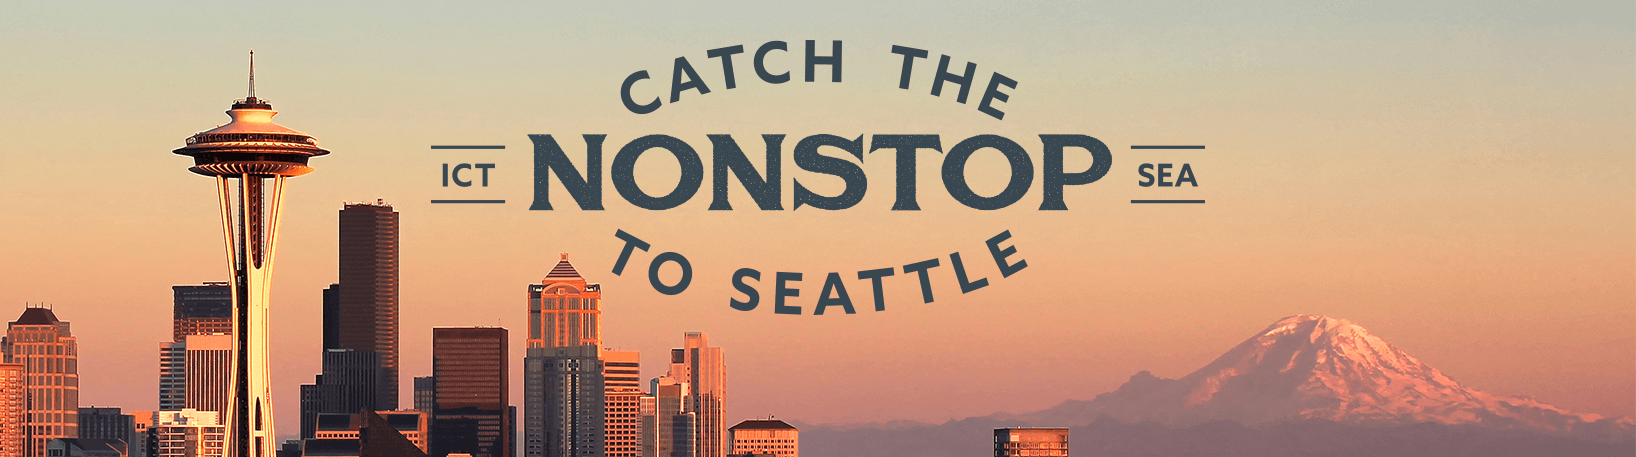 Fly Nonstop Wichita to Seattle with Alaska Air